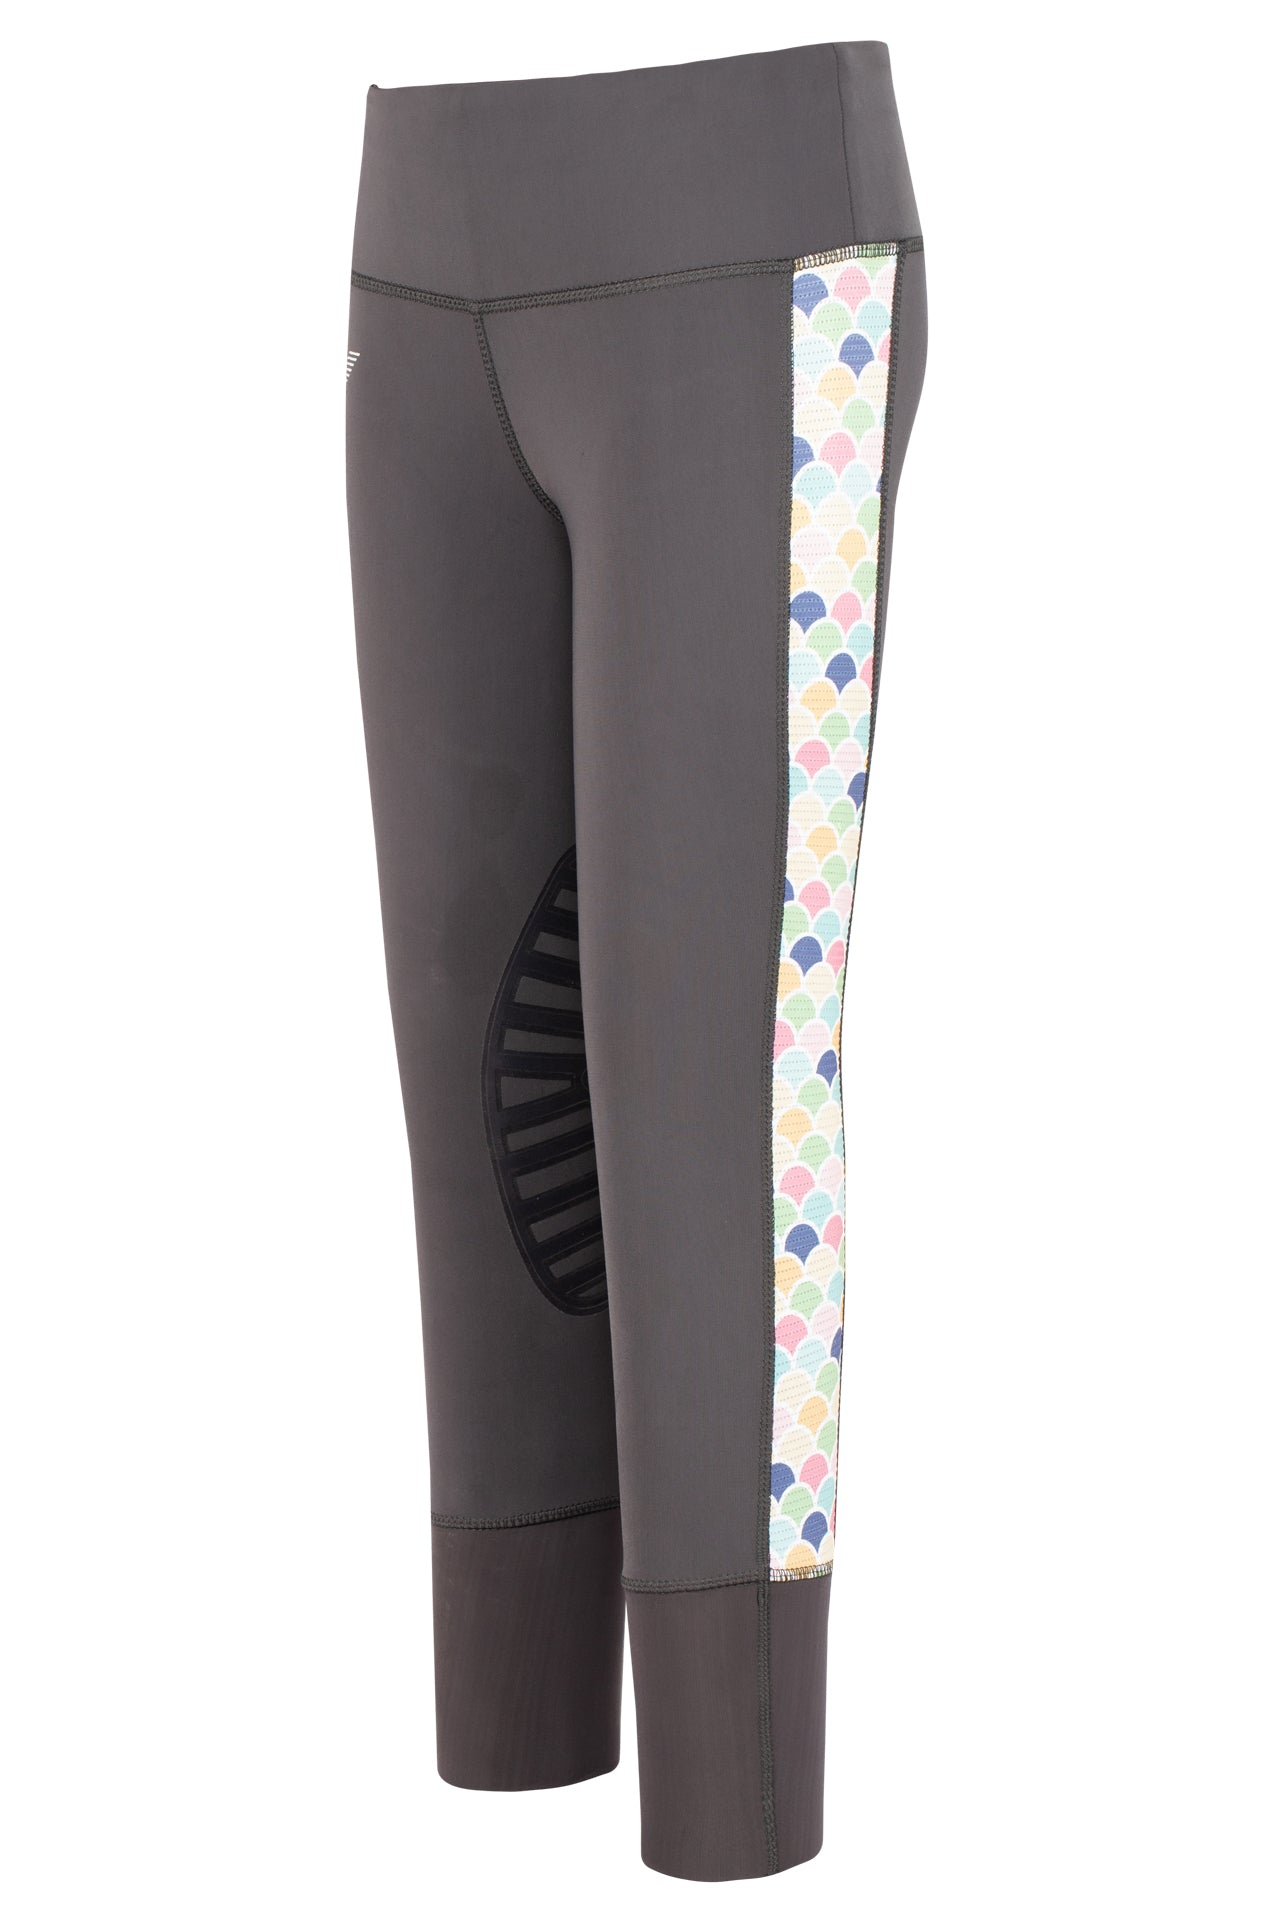 TuffRider Children's Iris EquiCool Riding Tights_846